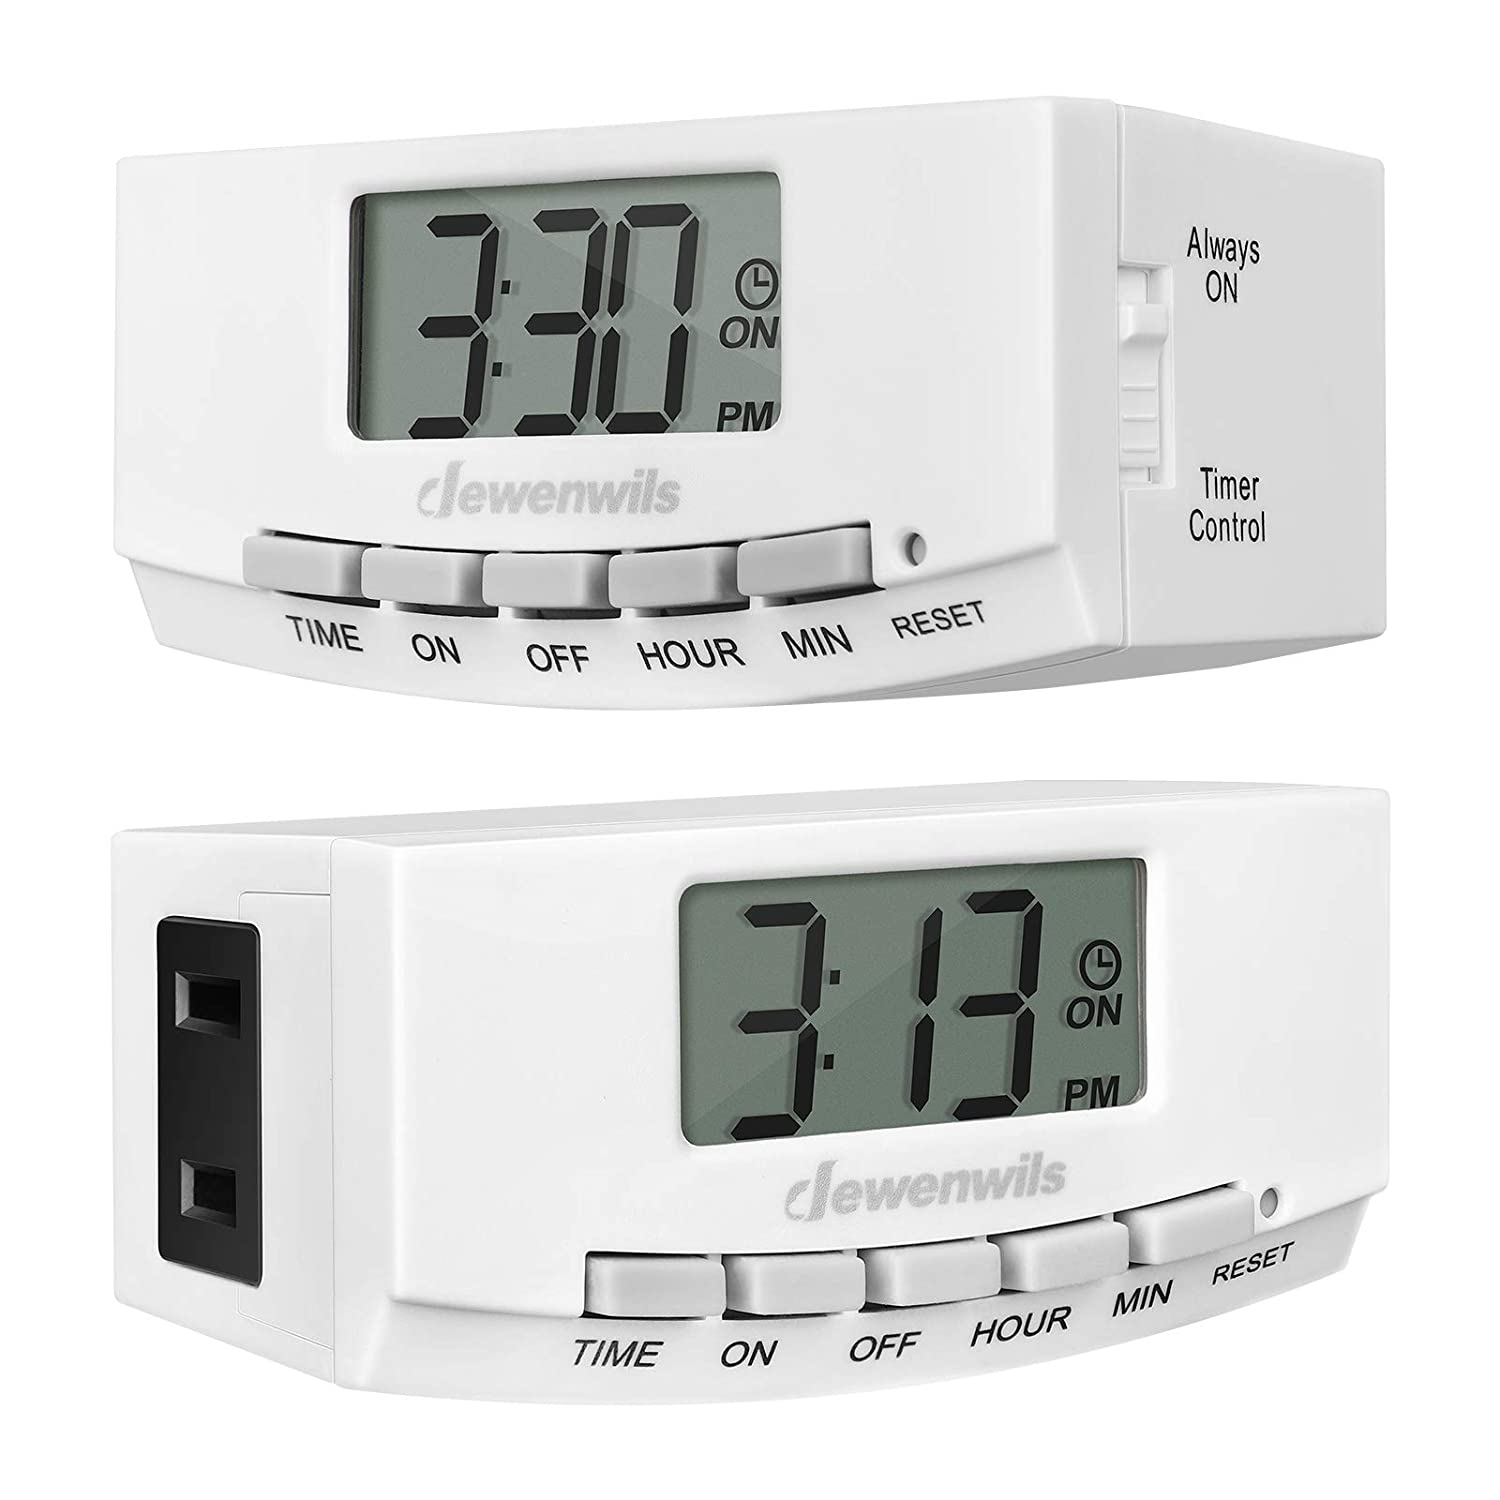 DEWENWILS Digital Outlet Timer Indoor, Plug in Electric Programmable Light Timer Switch with 1 Polarized Plug for Electrical Outlets, Grow Light, 1/2 HP, UL Listed, 2 Pack: Industrial & Scientific